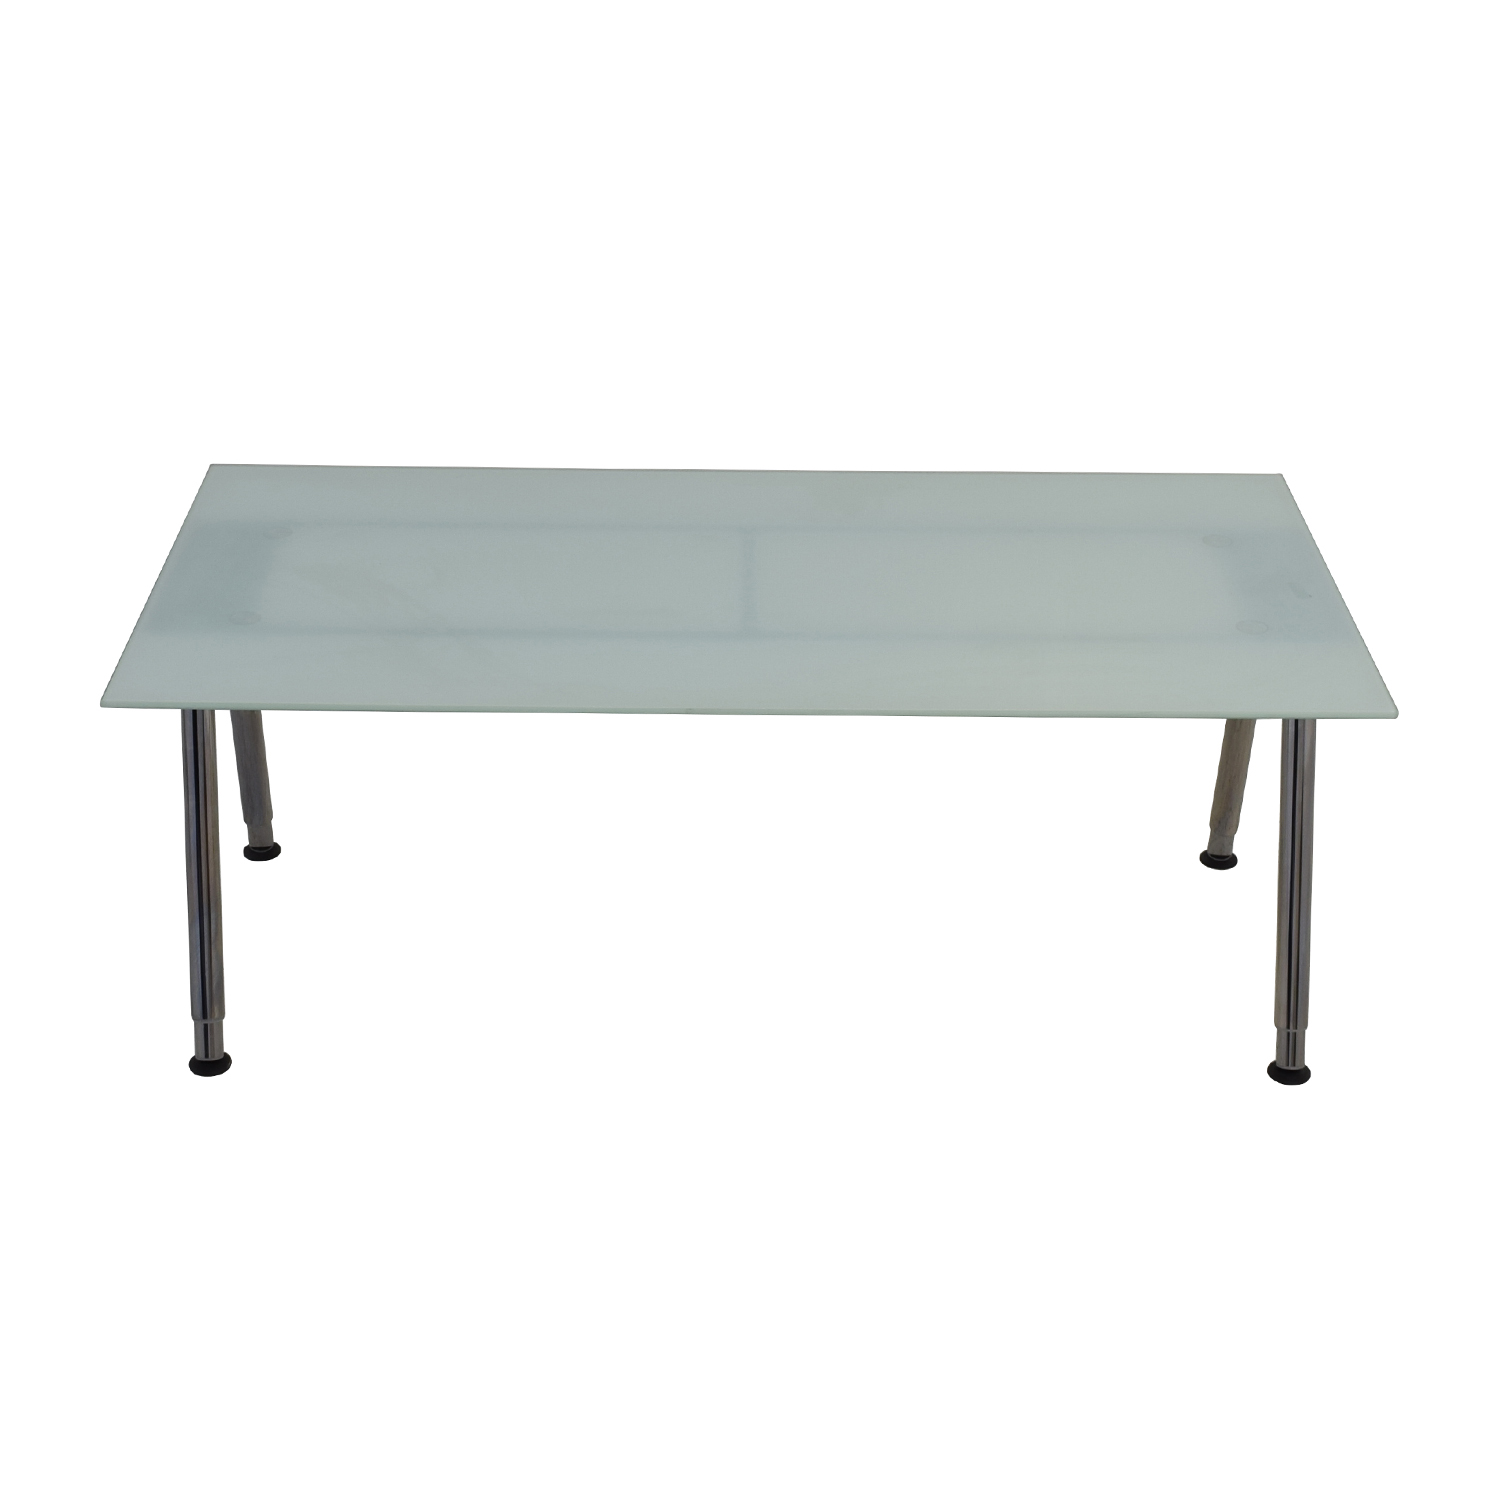 69% OFF - IKEA IKEA Galant glass Top Desk / Tables